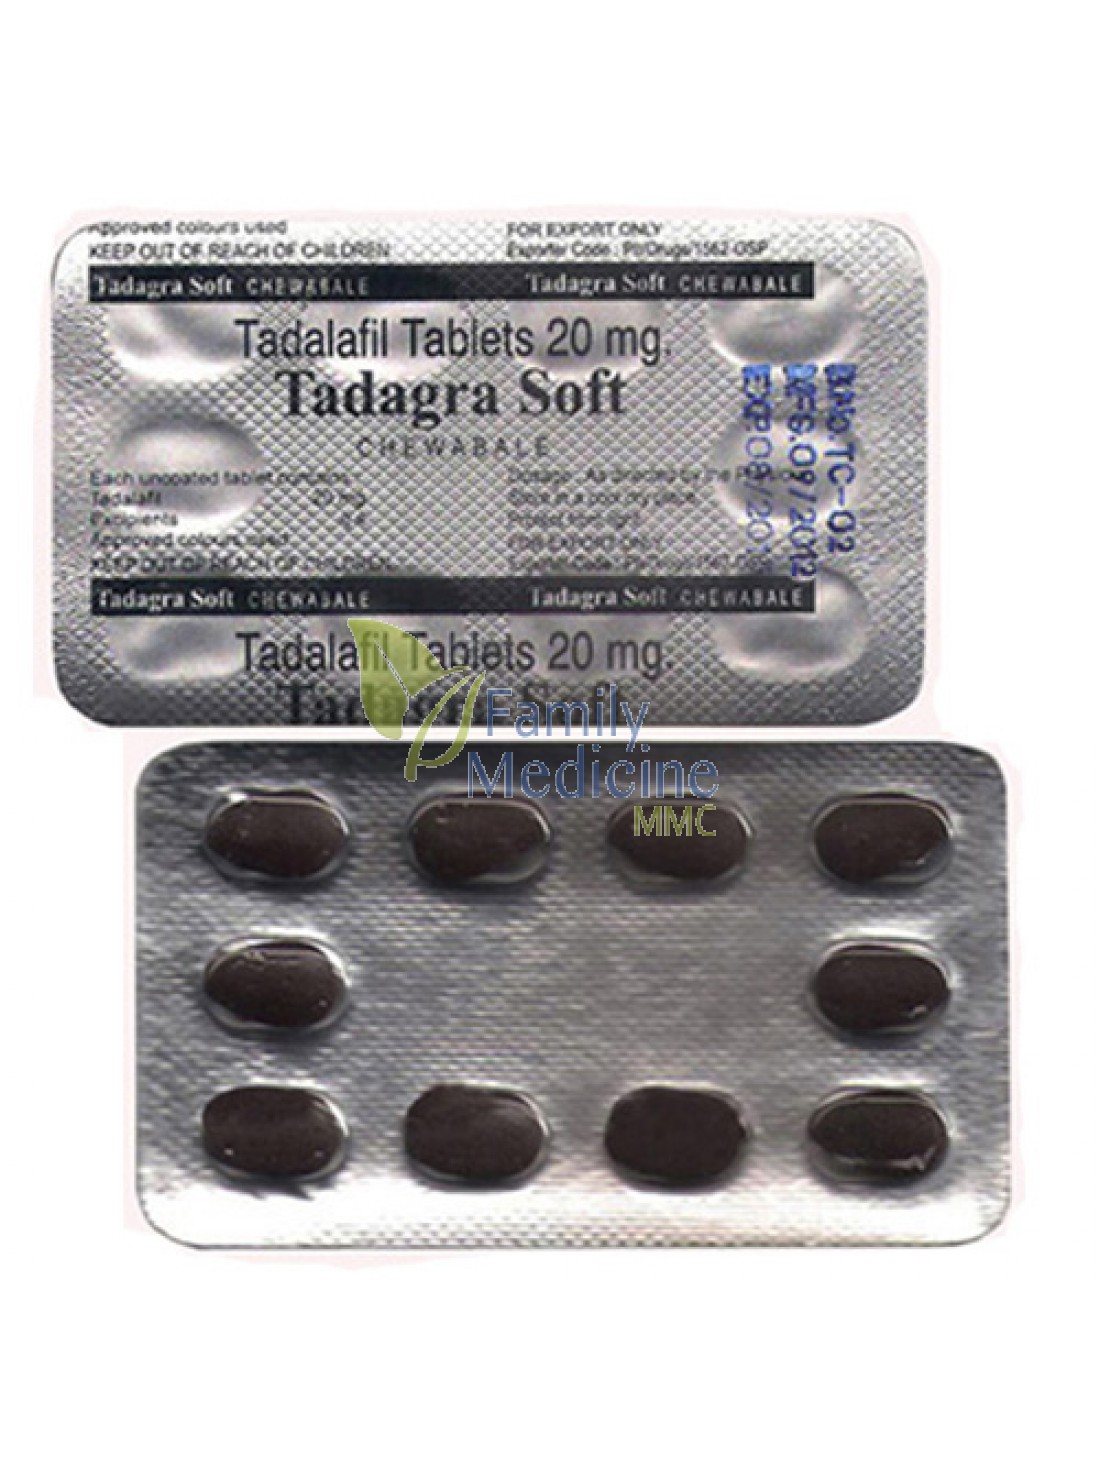 Tab ivermectin 12 mg brands in india